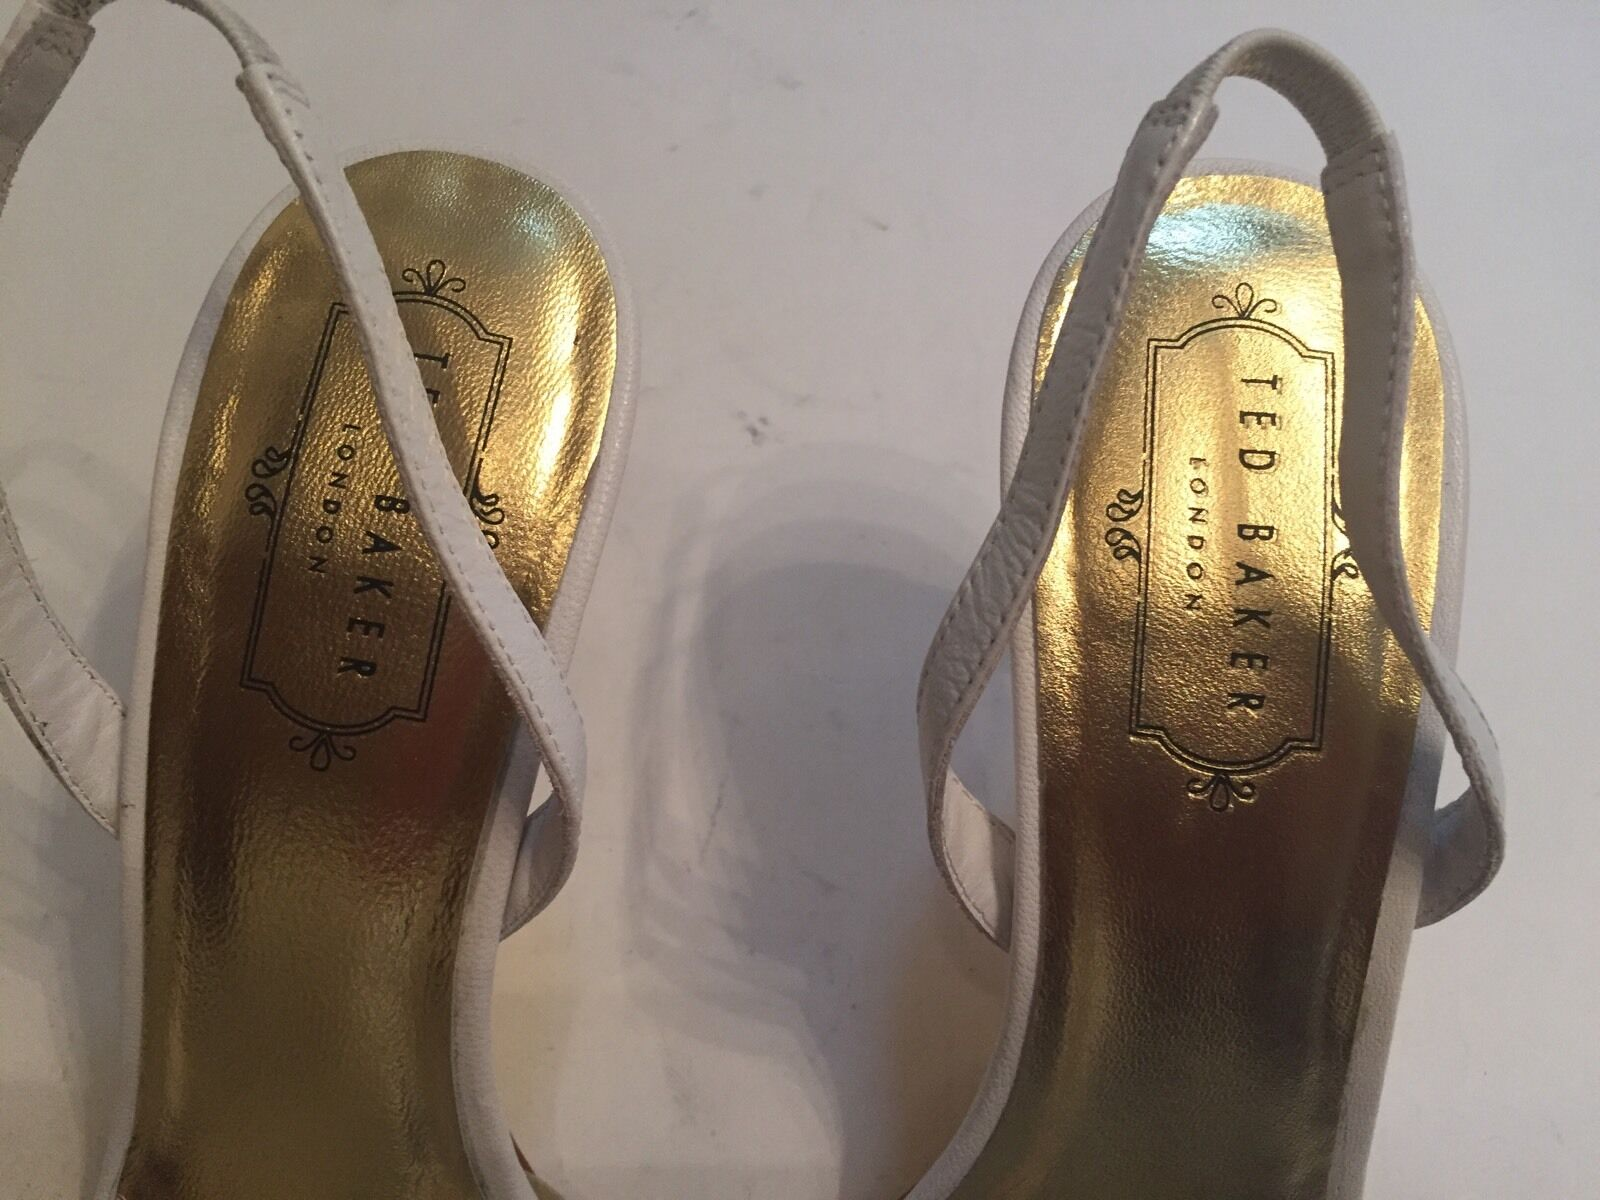 Ted Baker women's women's women's Slingbacks Leather Yellow White gold Heels Caareen 38.5 US 7.5 7f86c3